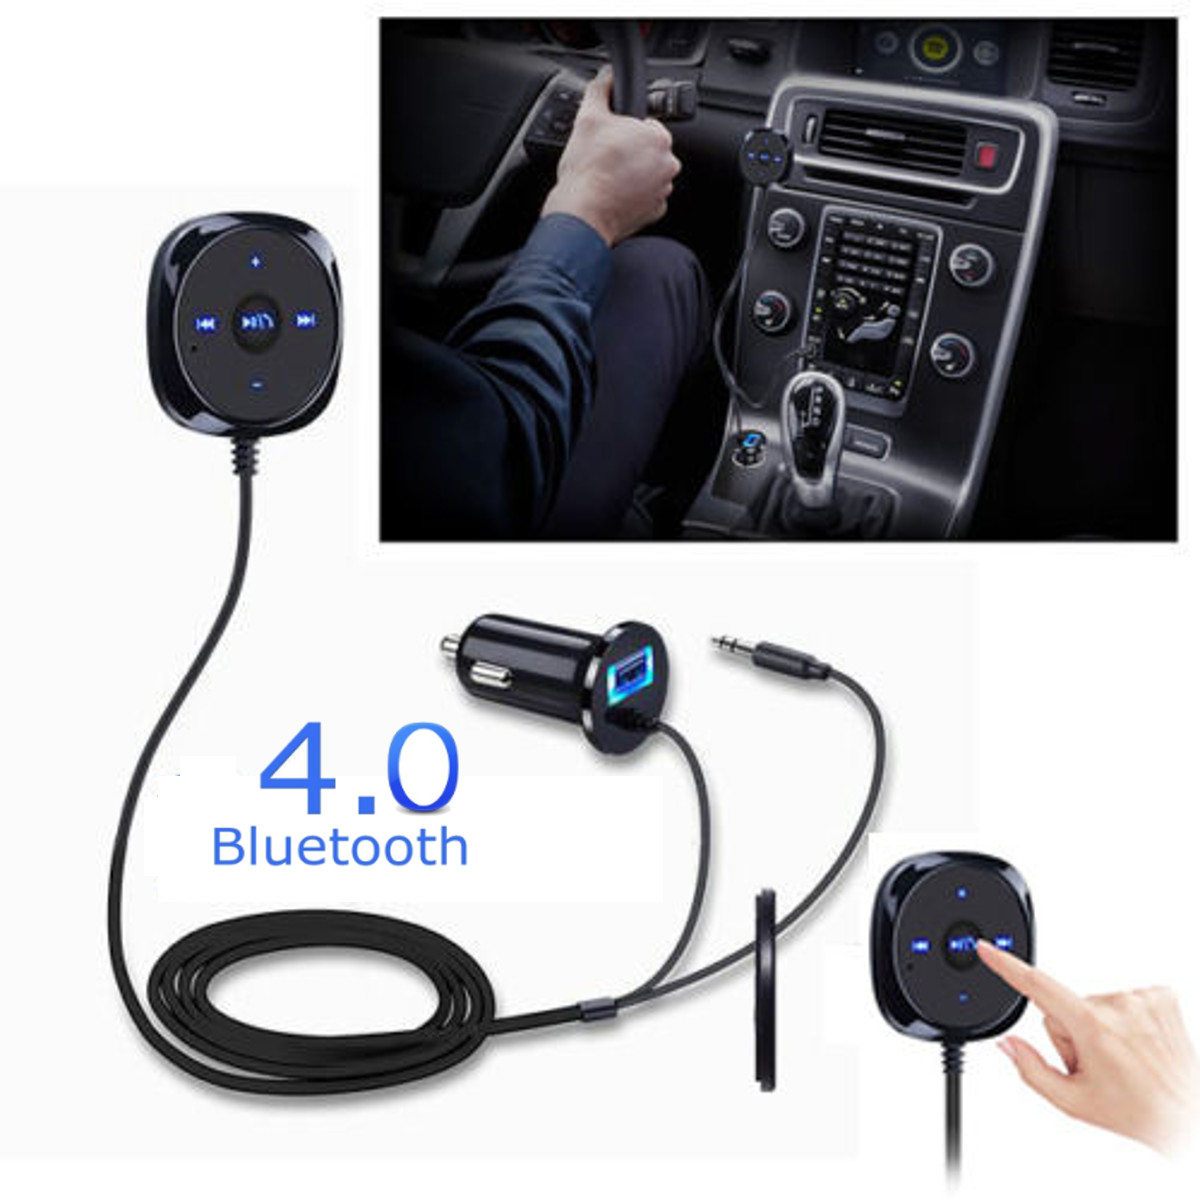 Instalar Manos Libres Coche Bluetooth 4 Wireless Music Receptor Adaptador De 3 5 Mm